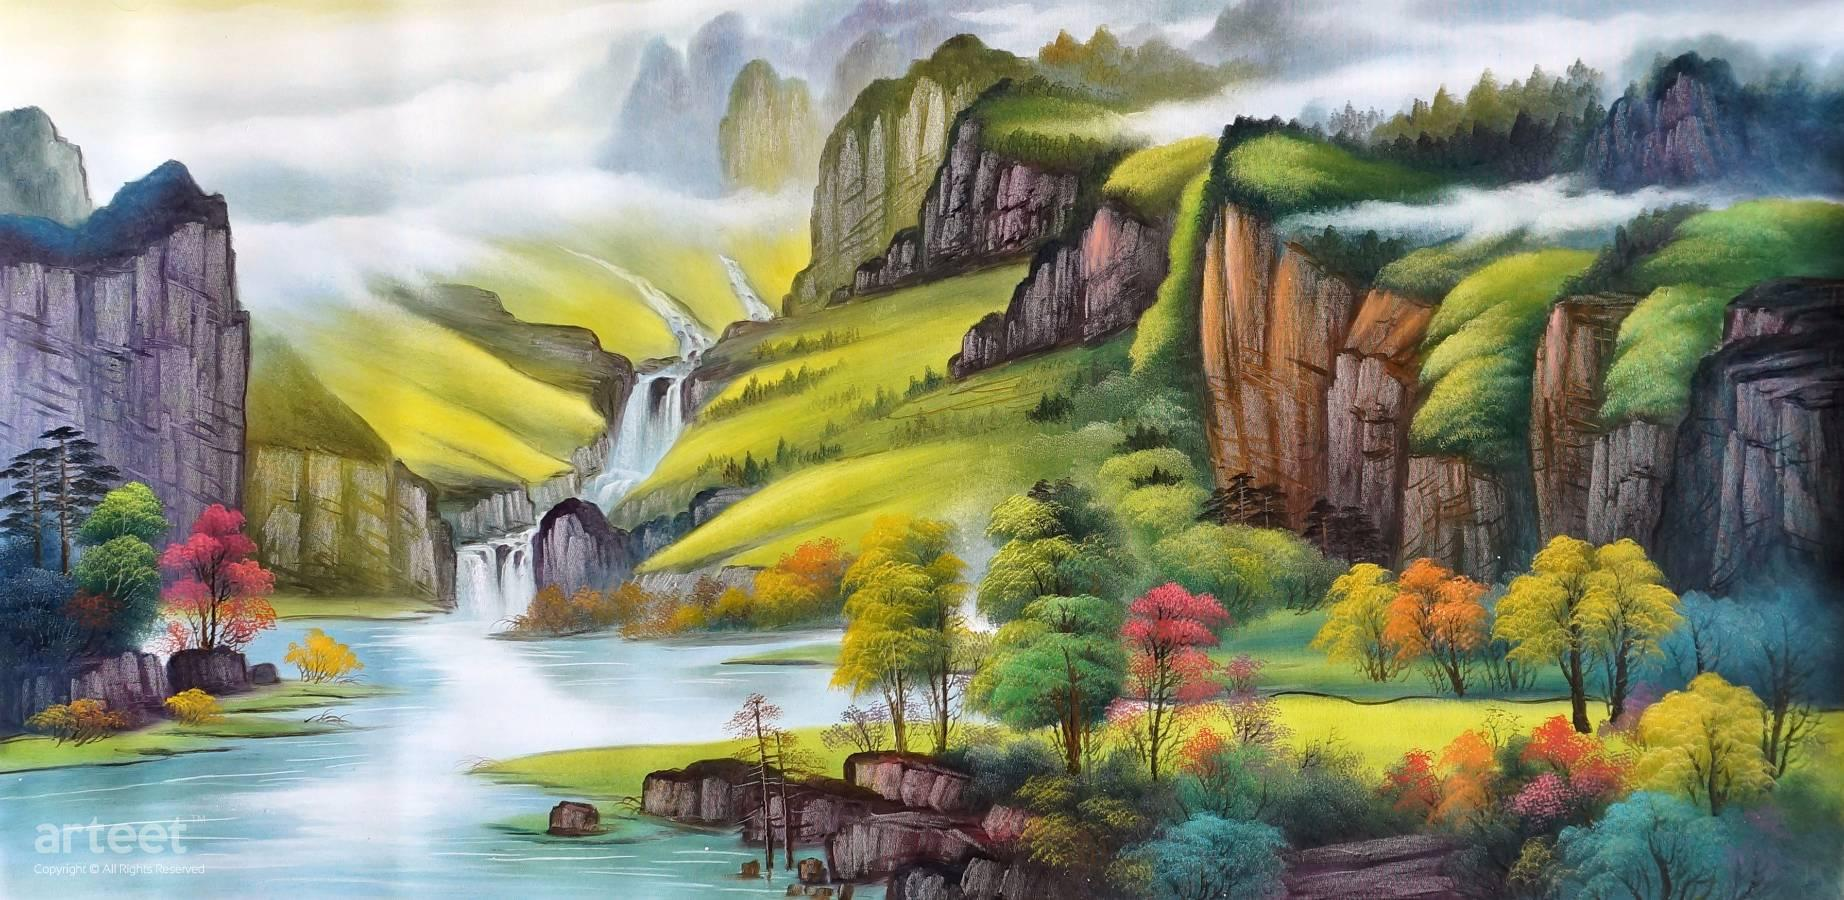 Eternal Spring Amid Myriad Of Mountains Art Paintings